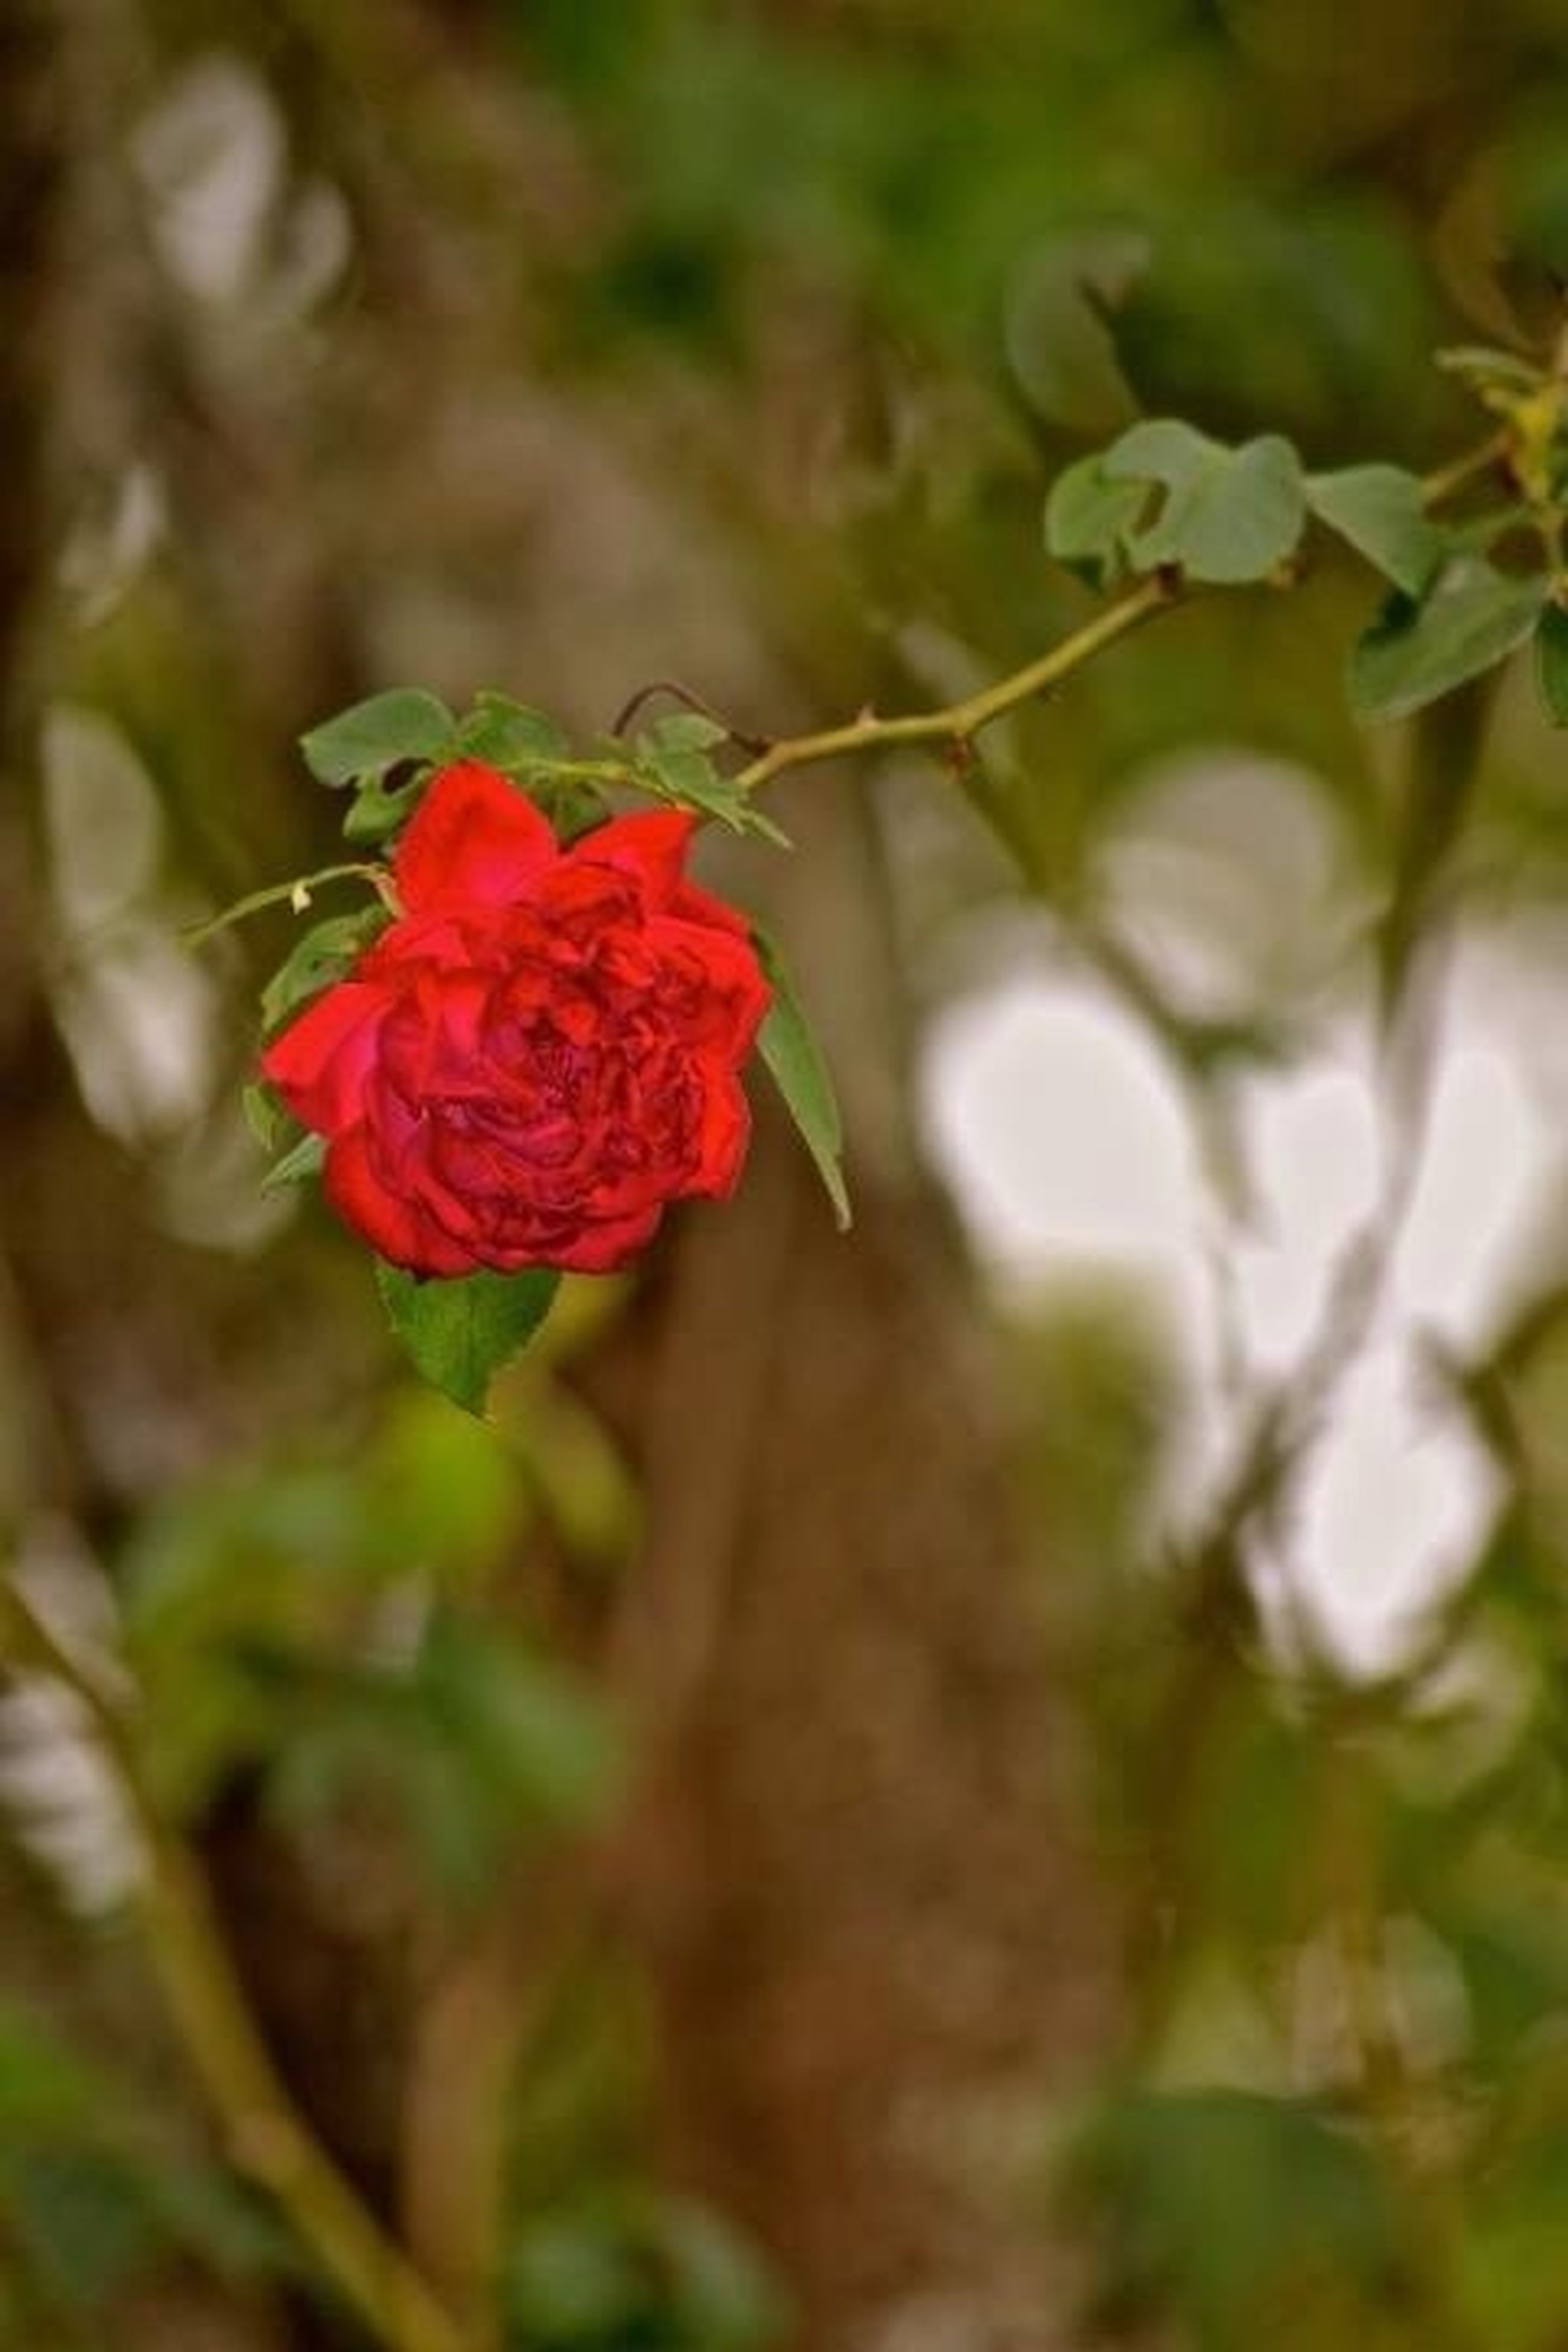 flower, petal, freshness, fragility, flower head, growth, red, beauty in nature, plant, blooming, focus on foreground, close-up, nature, in bloom, selective focus, stem, single flower, bud, rose - flower, blossom